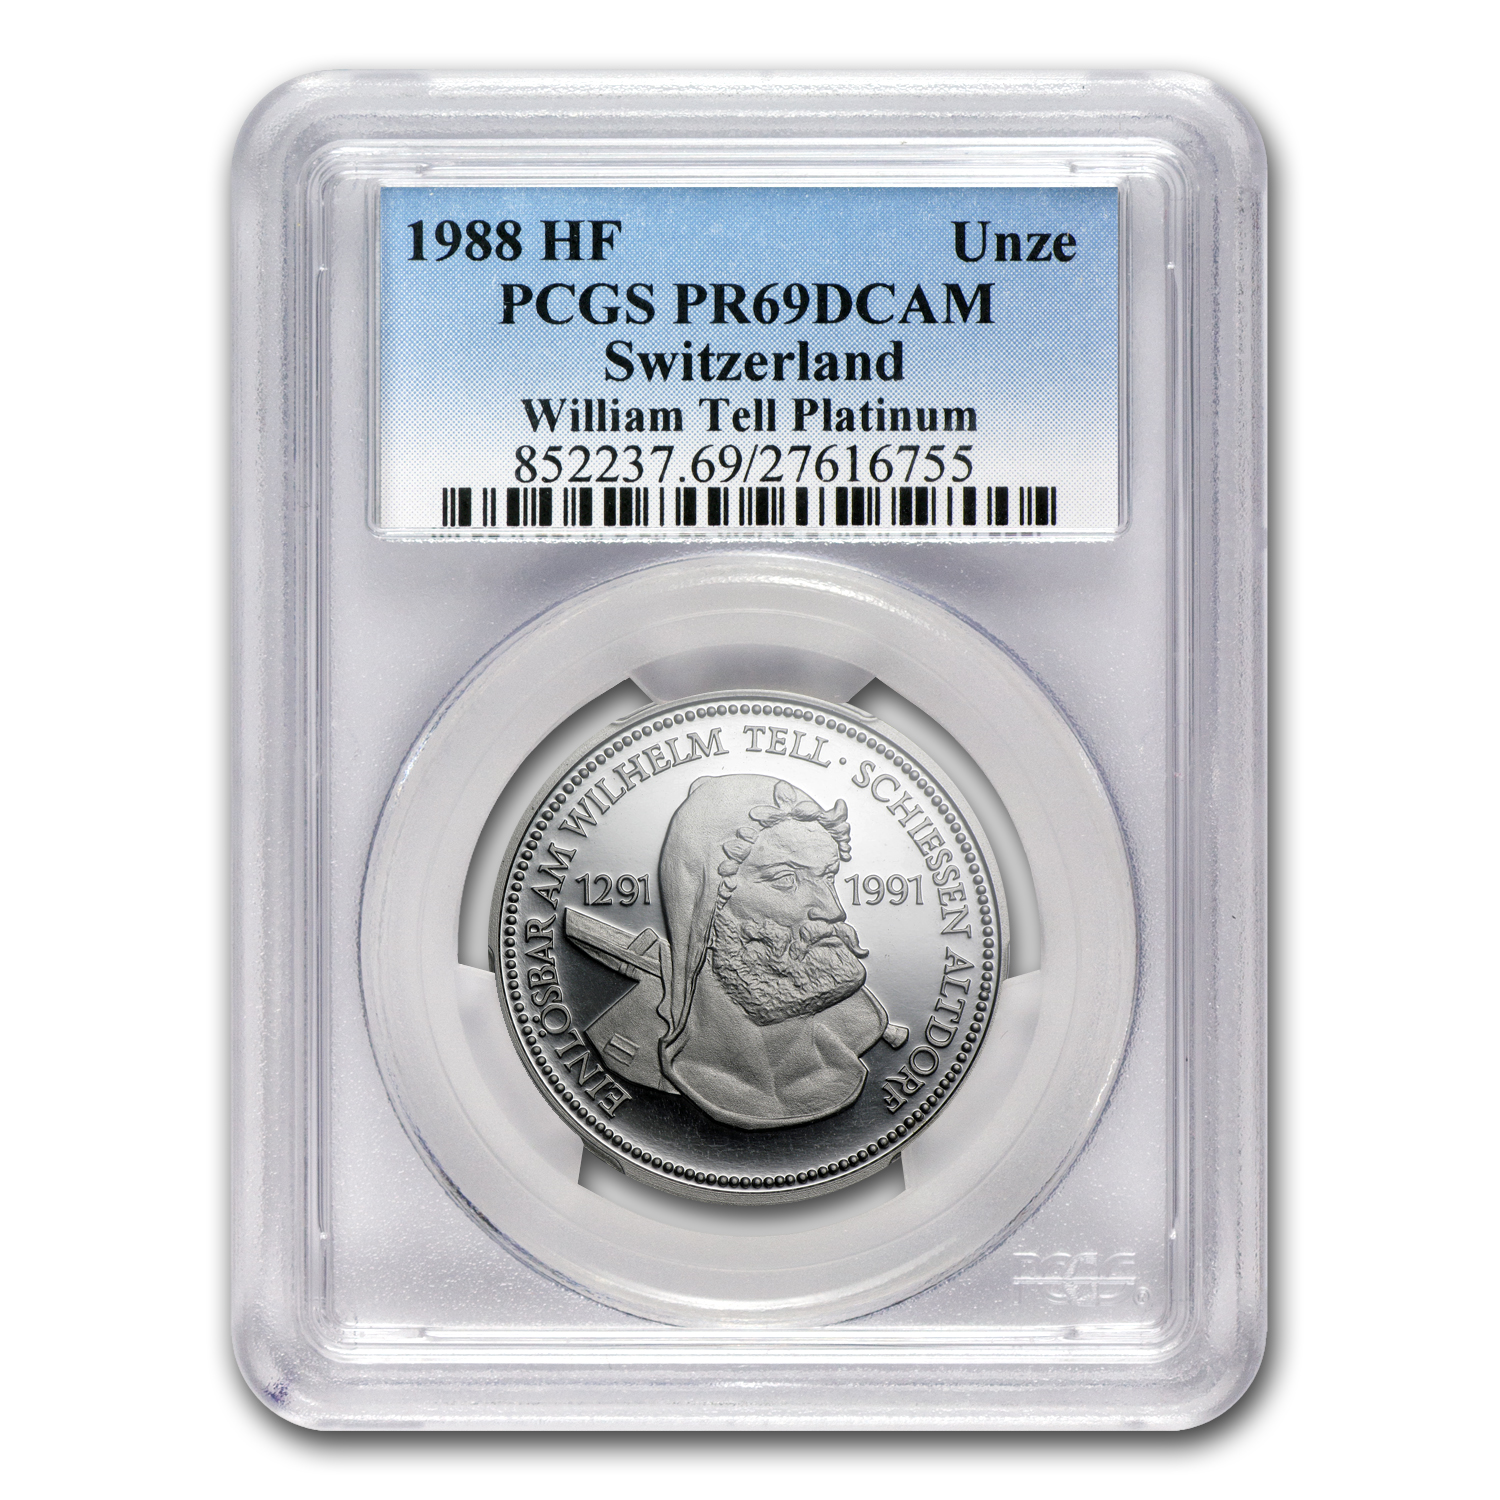 1988 1 oz Proof Swiss Platinum William Tell PR-69 PCGS